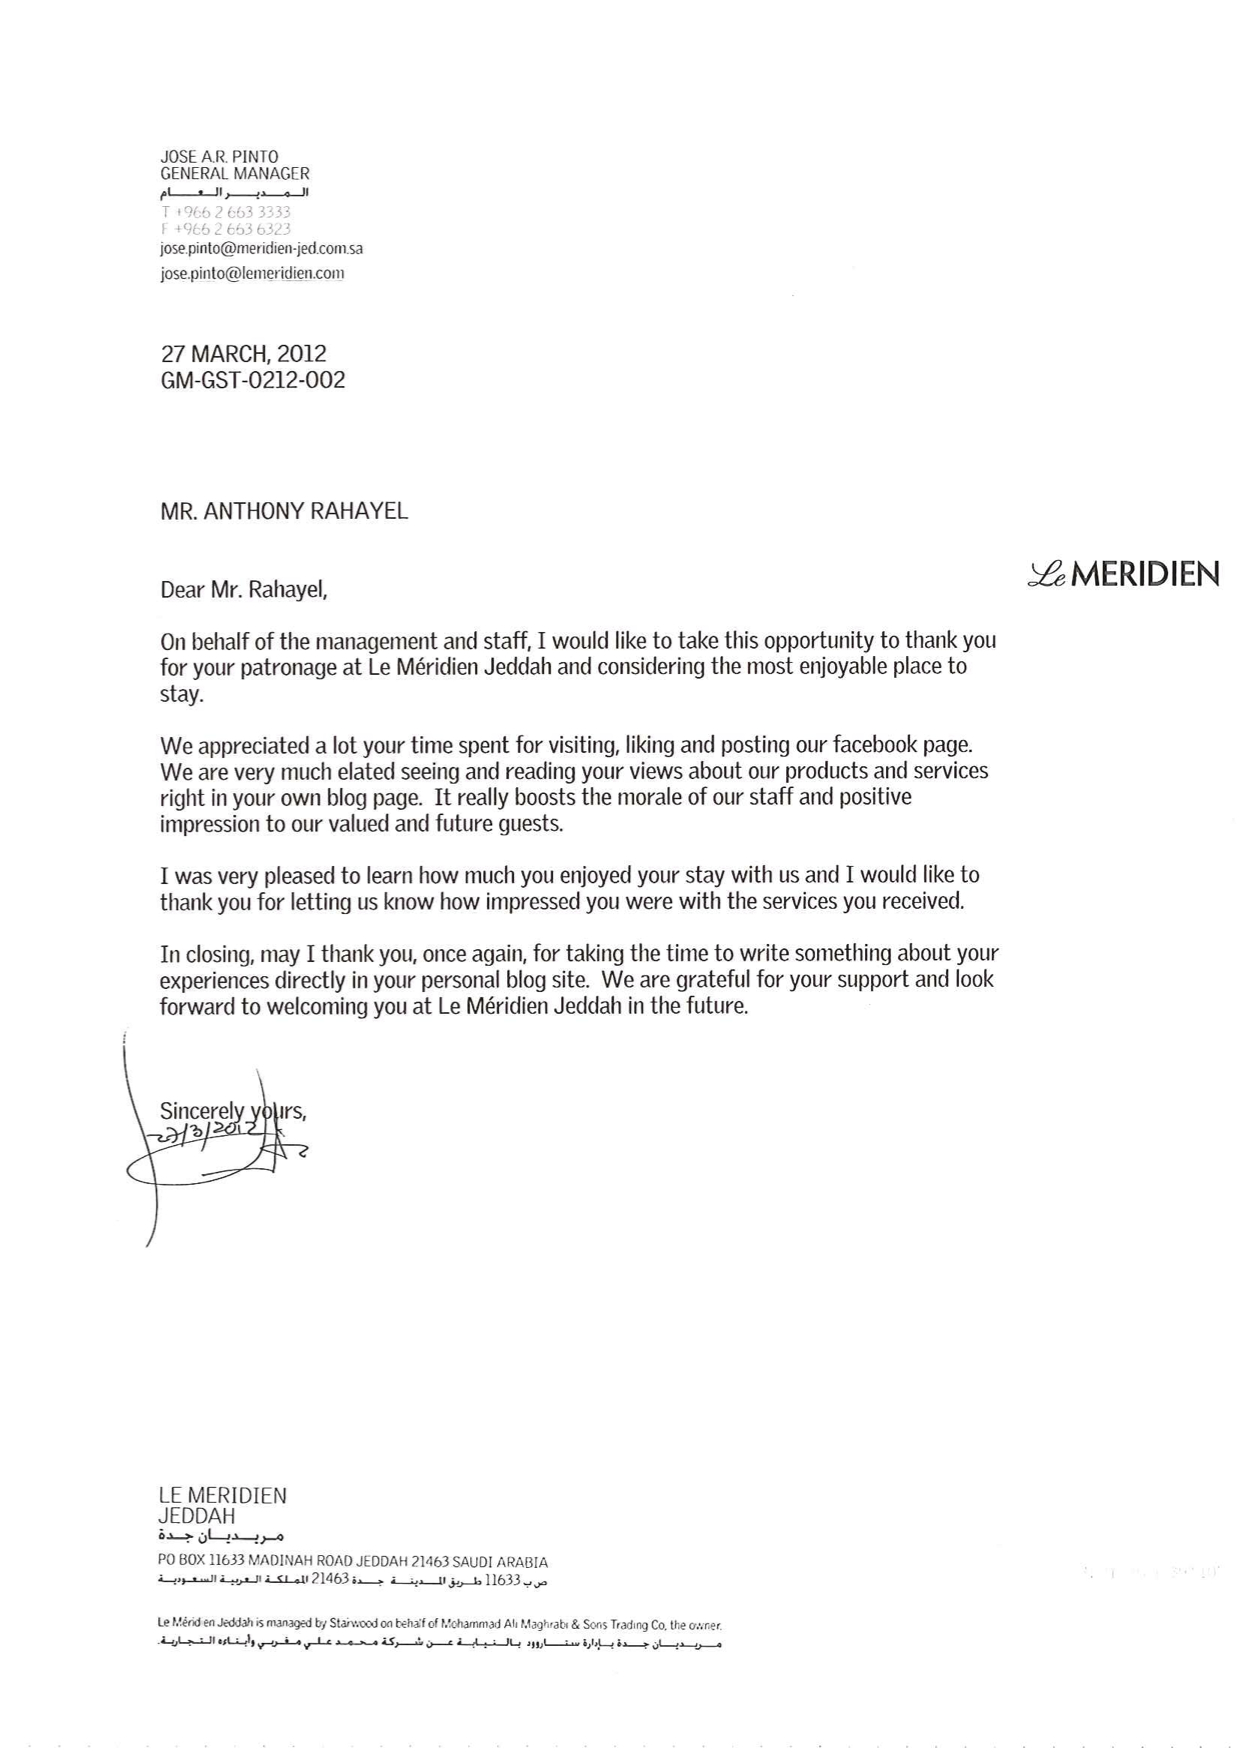 A Thank You Letter From Le Merin